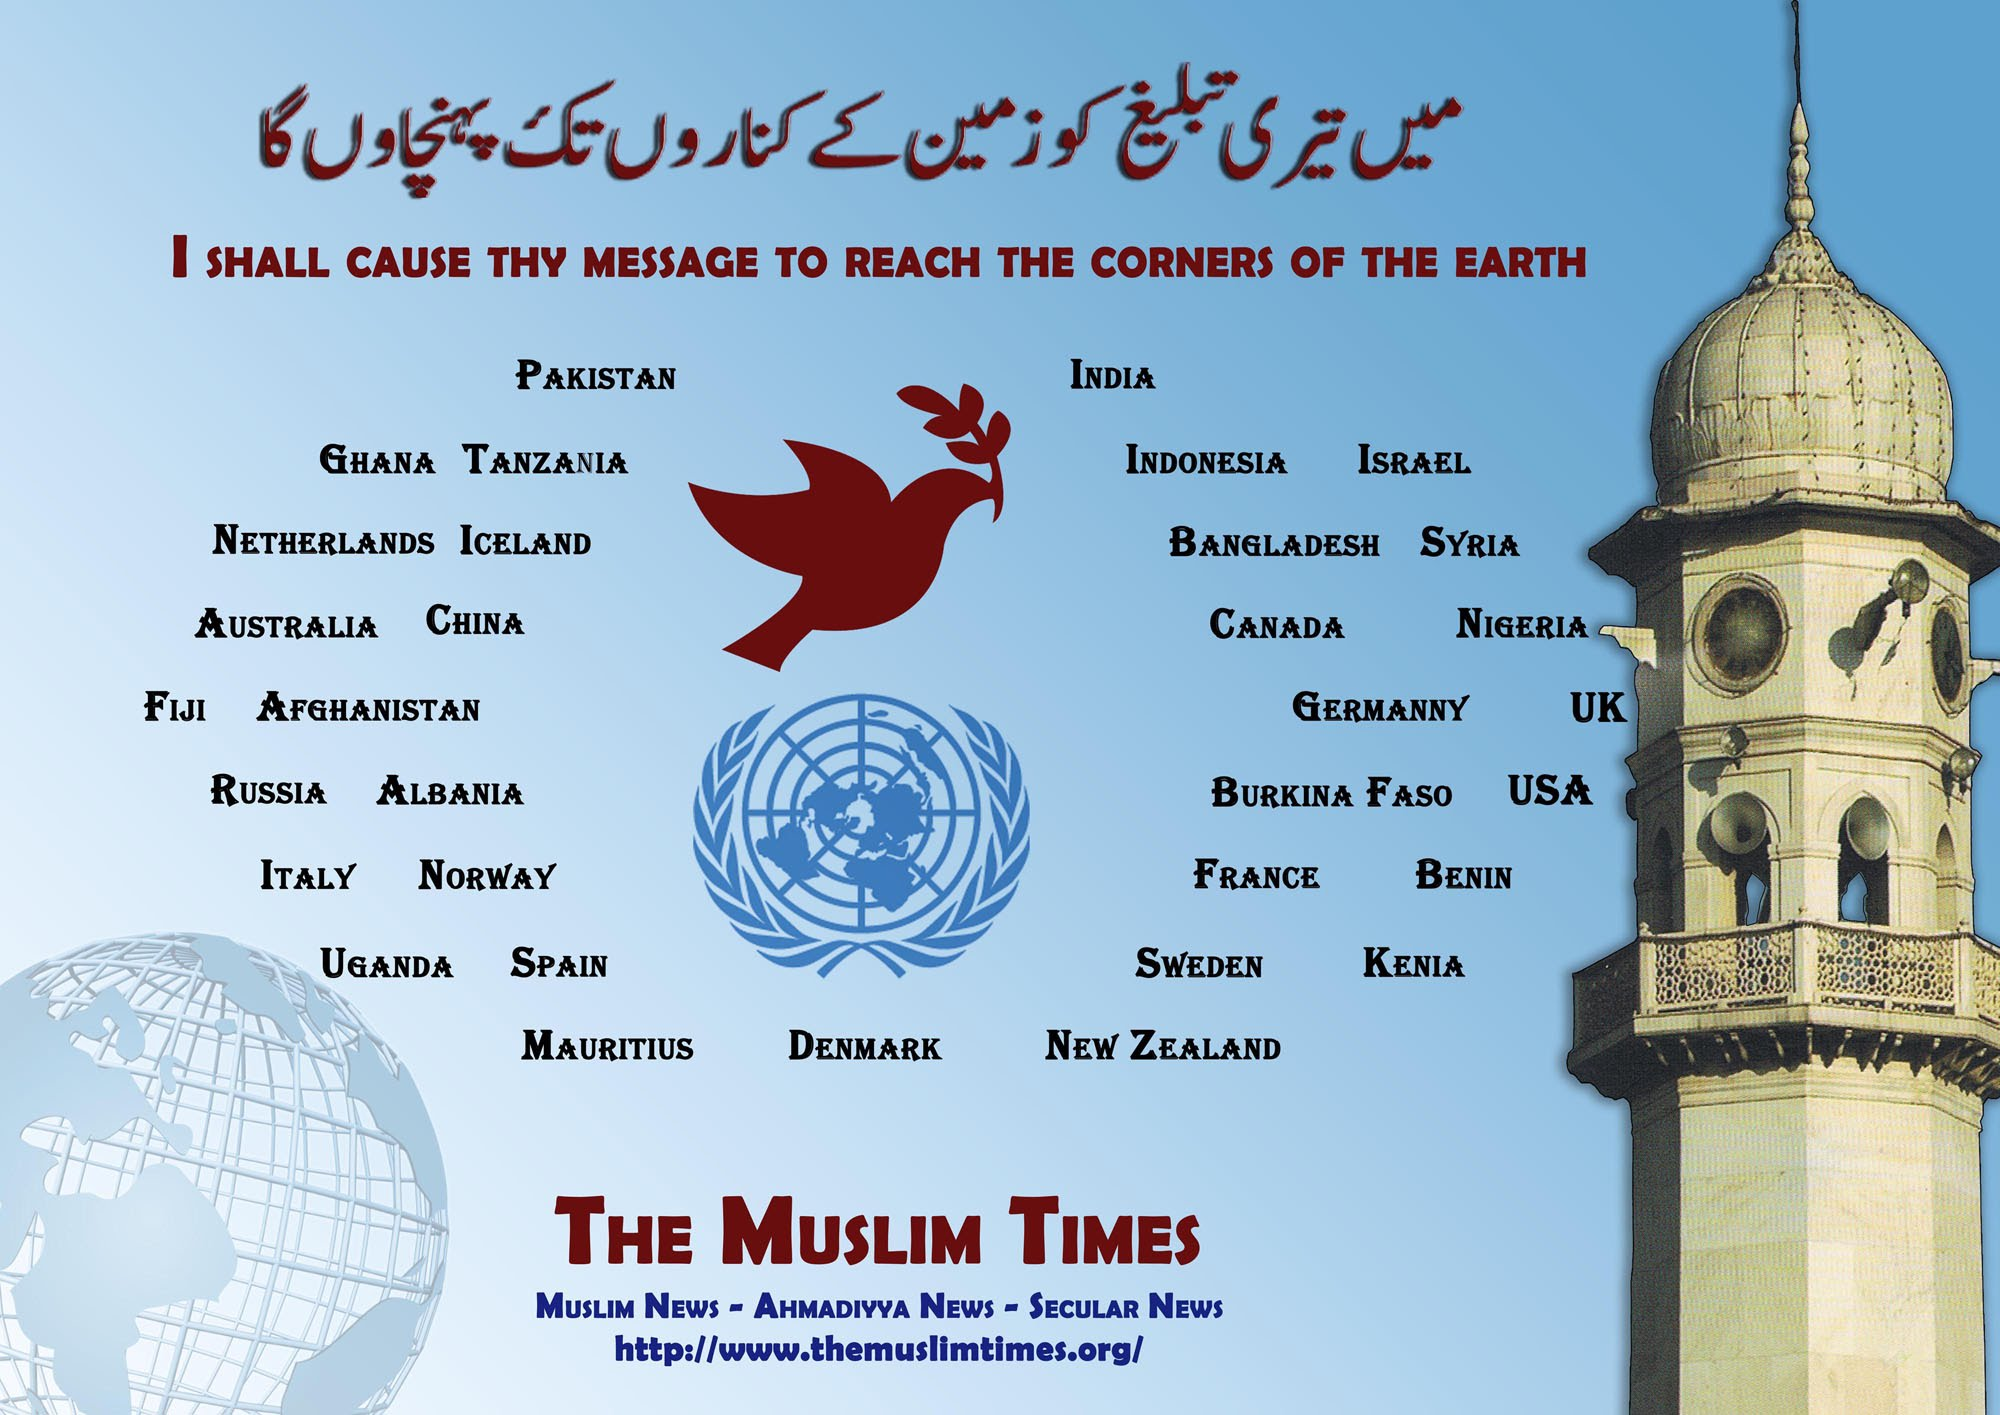 The Muslim Times: A Blog to Foster Universal Brotherhood